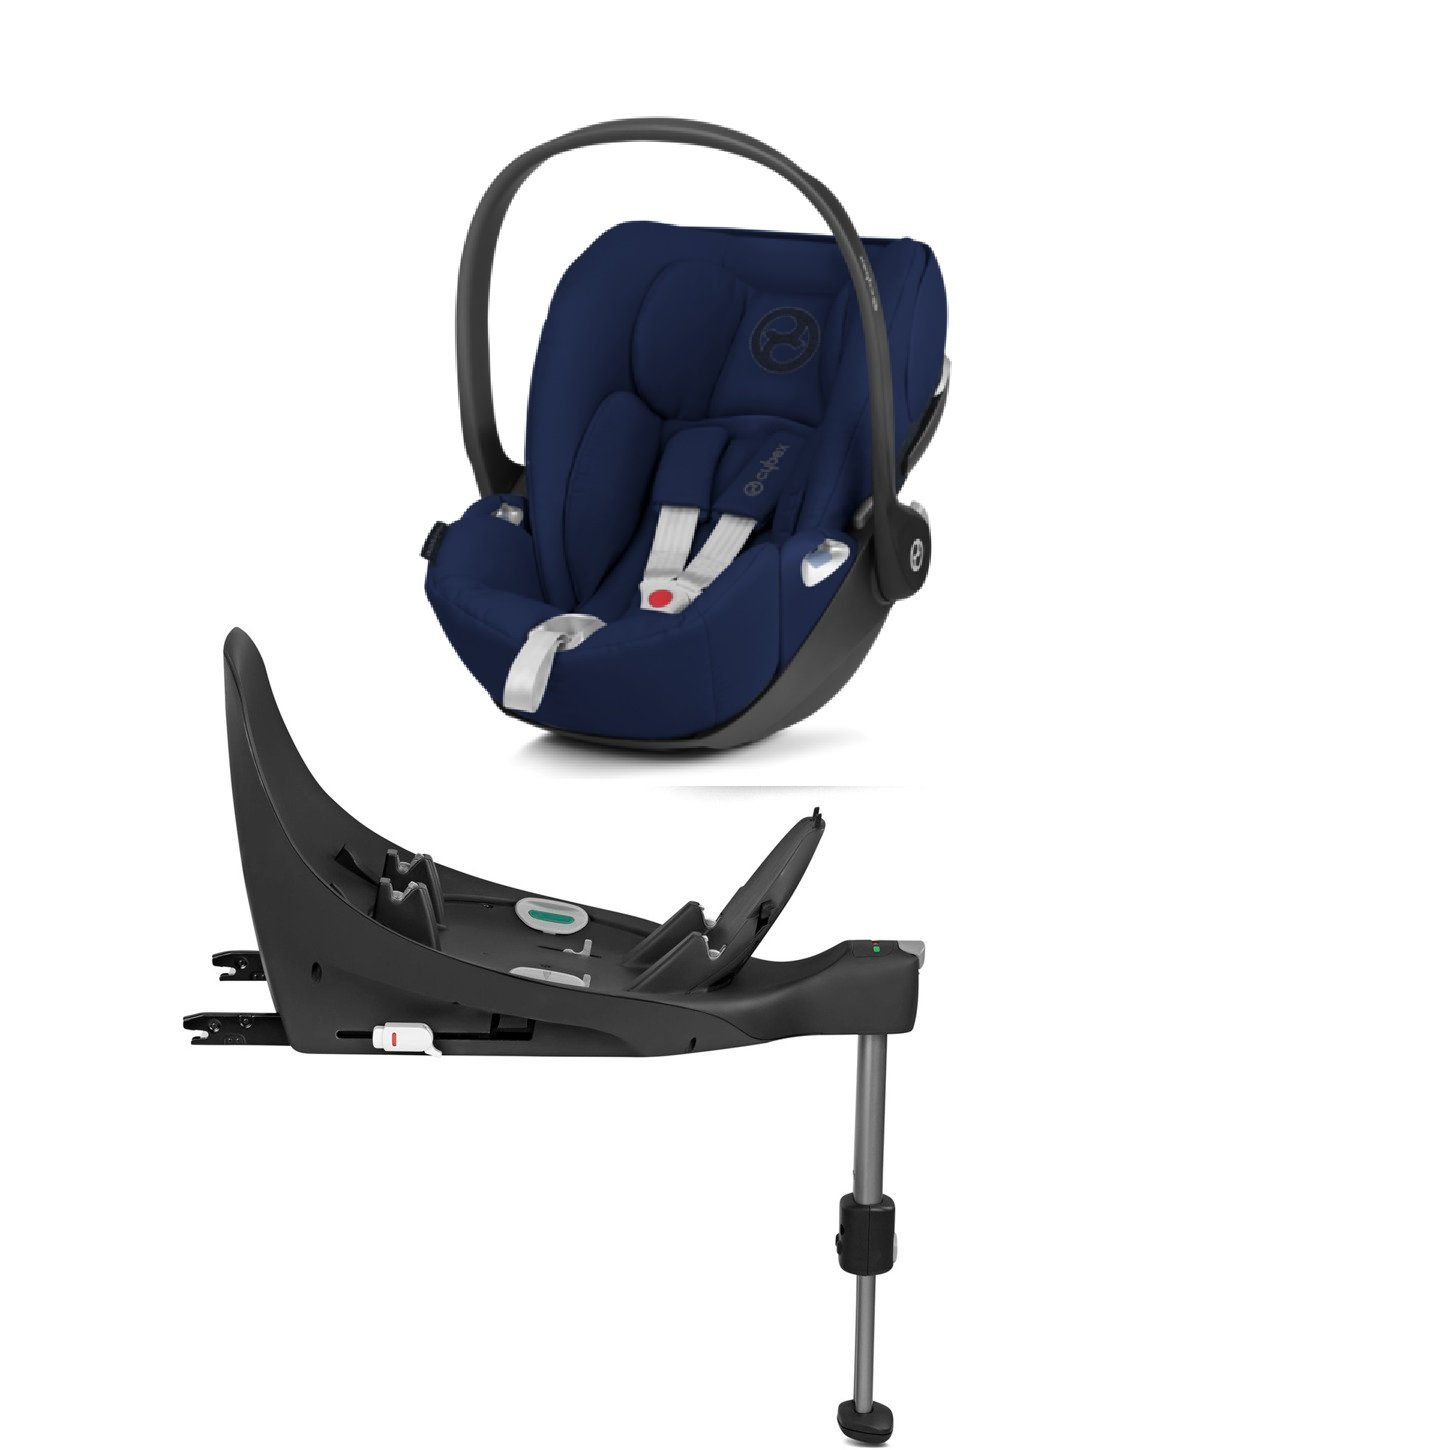 Cybex Cloud Z I-Size + ISOFIX Base Midnight Blue Bērnu autosēdeklis 0-13 kg